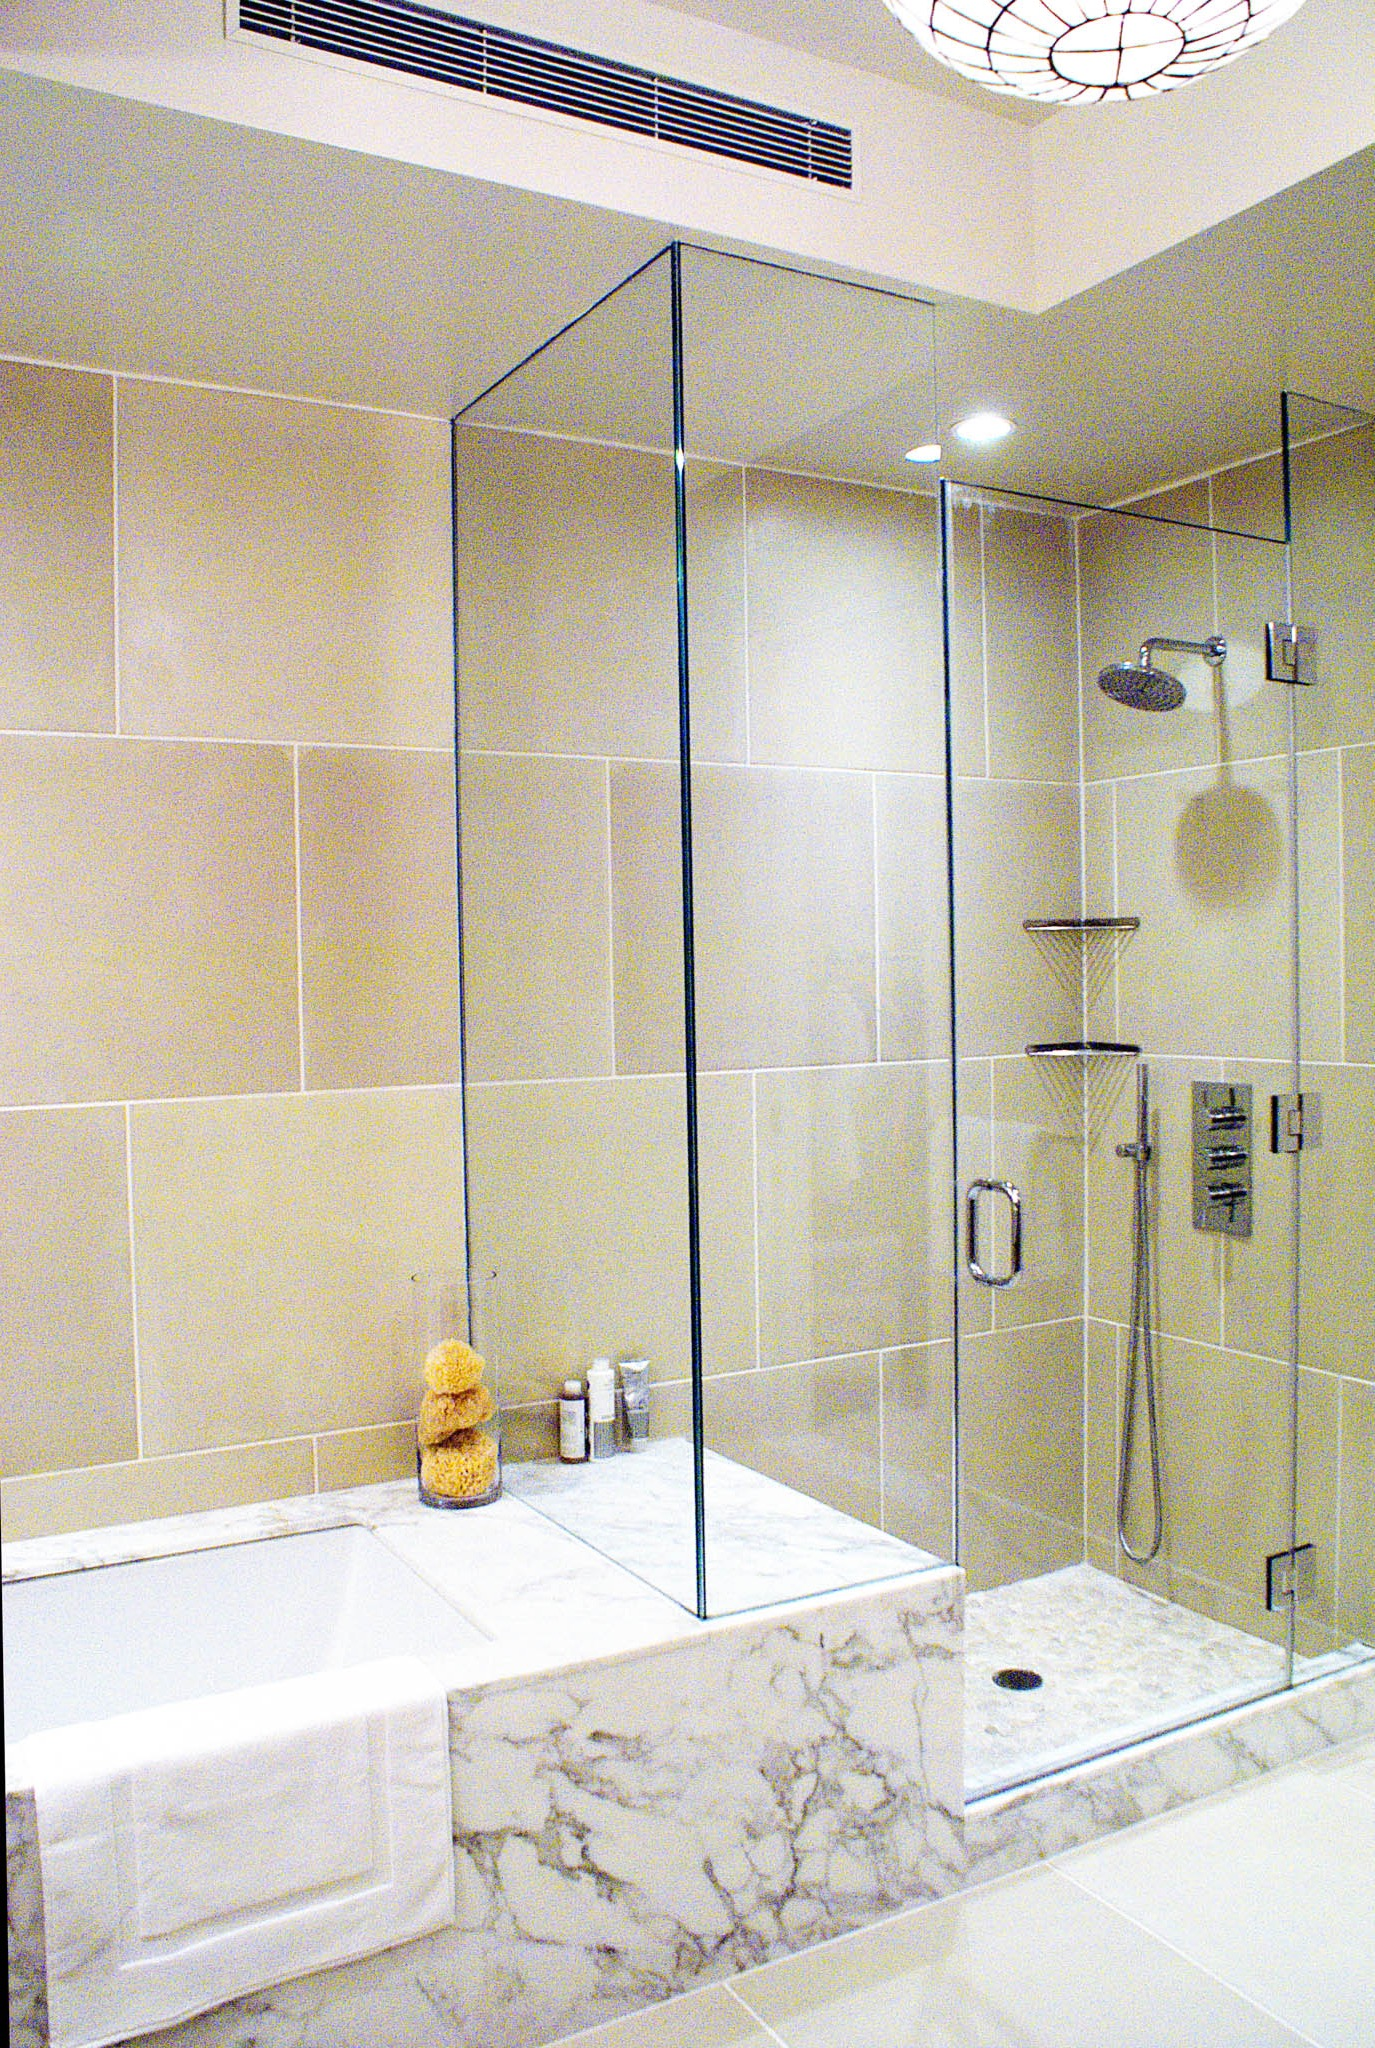 Limestone Tile Bathroom With Pebble Floor Shower And Bathtub Combination (View 7 of 19)